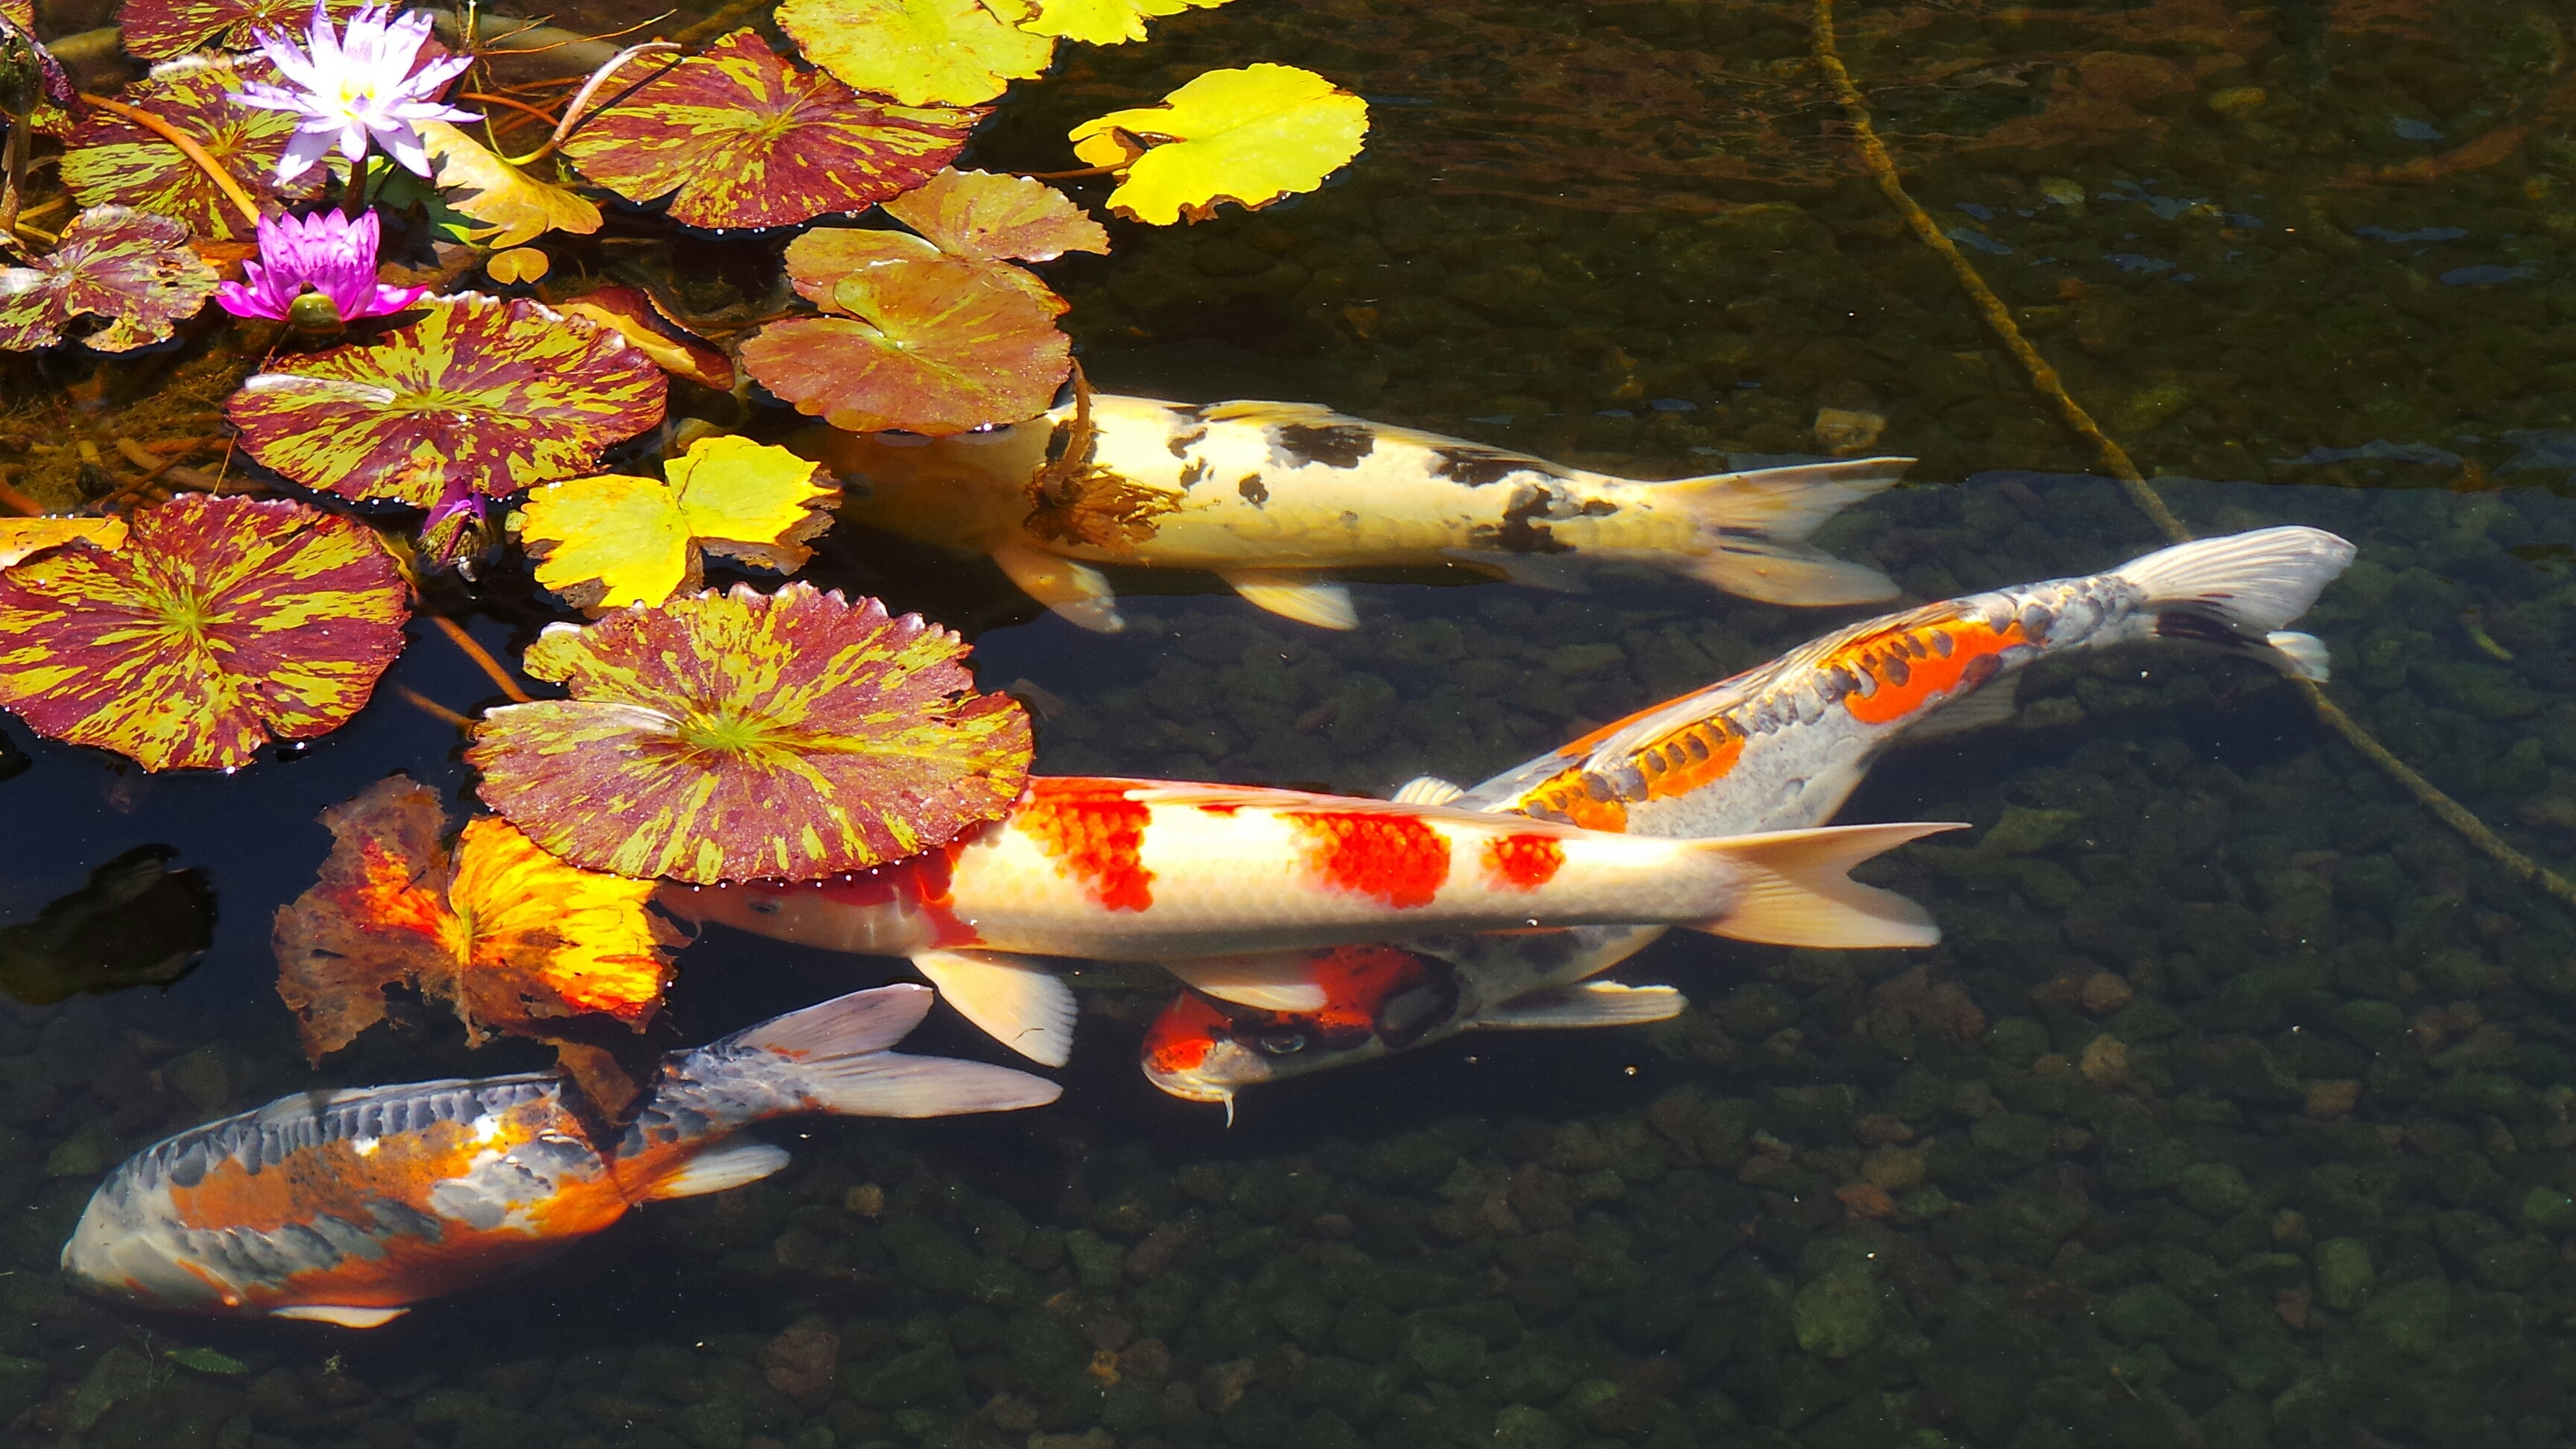 Guide to the fashion island koi ponds in newport beach for Koi fish pond